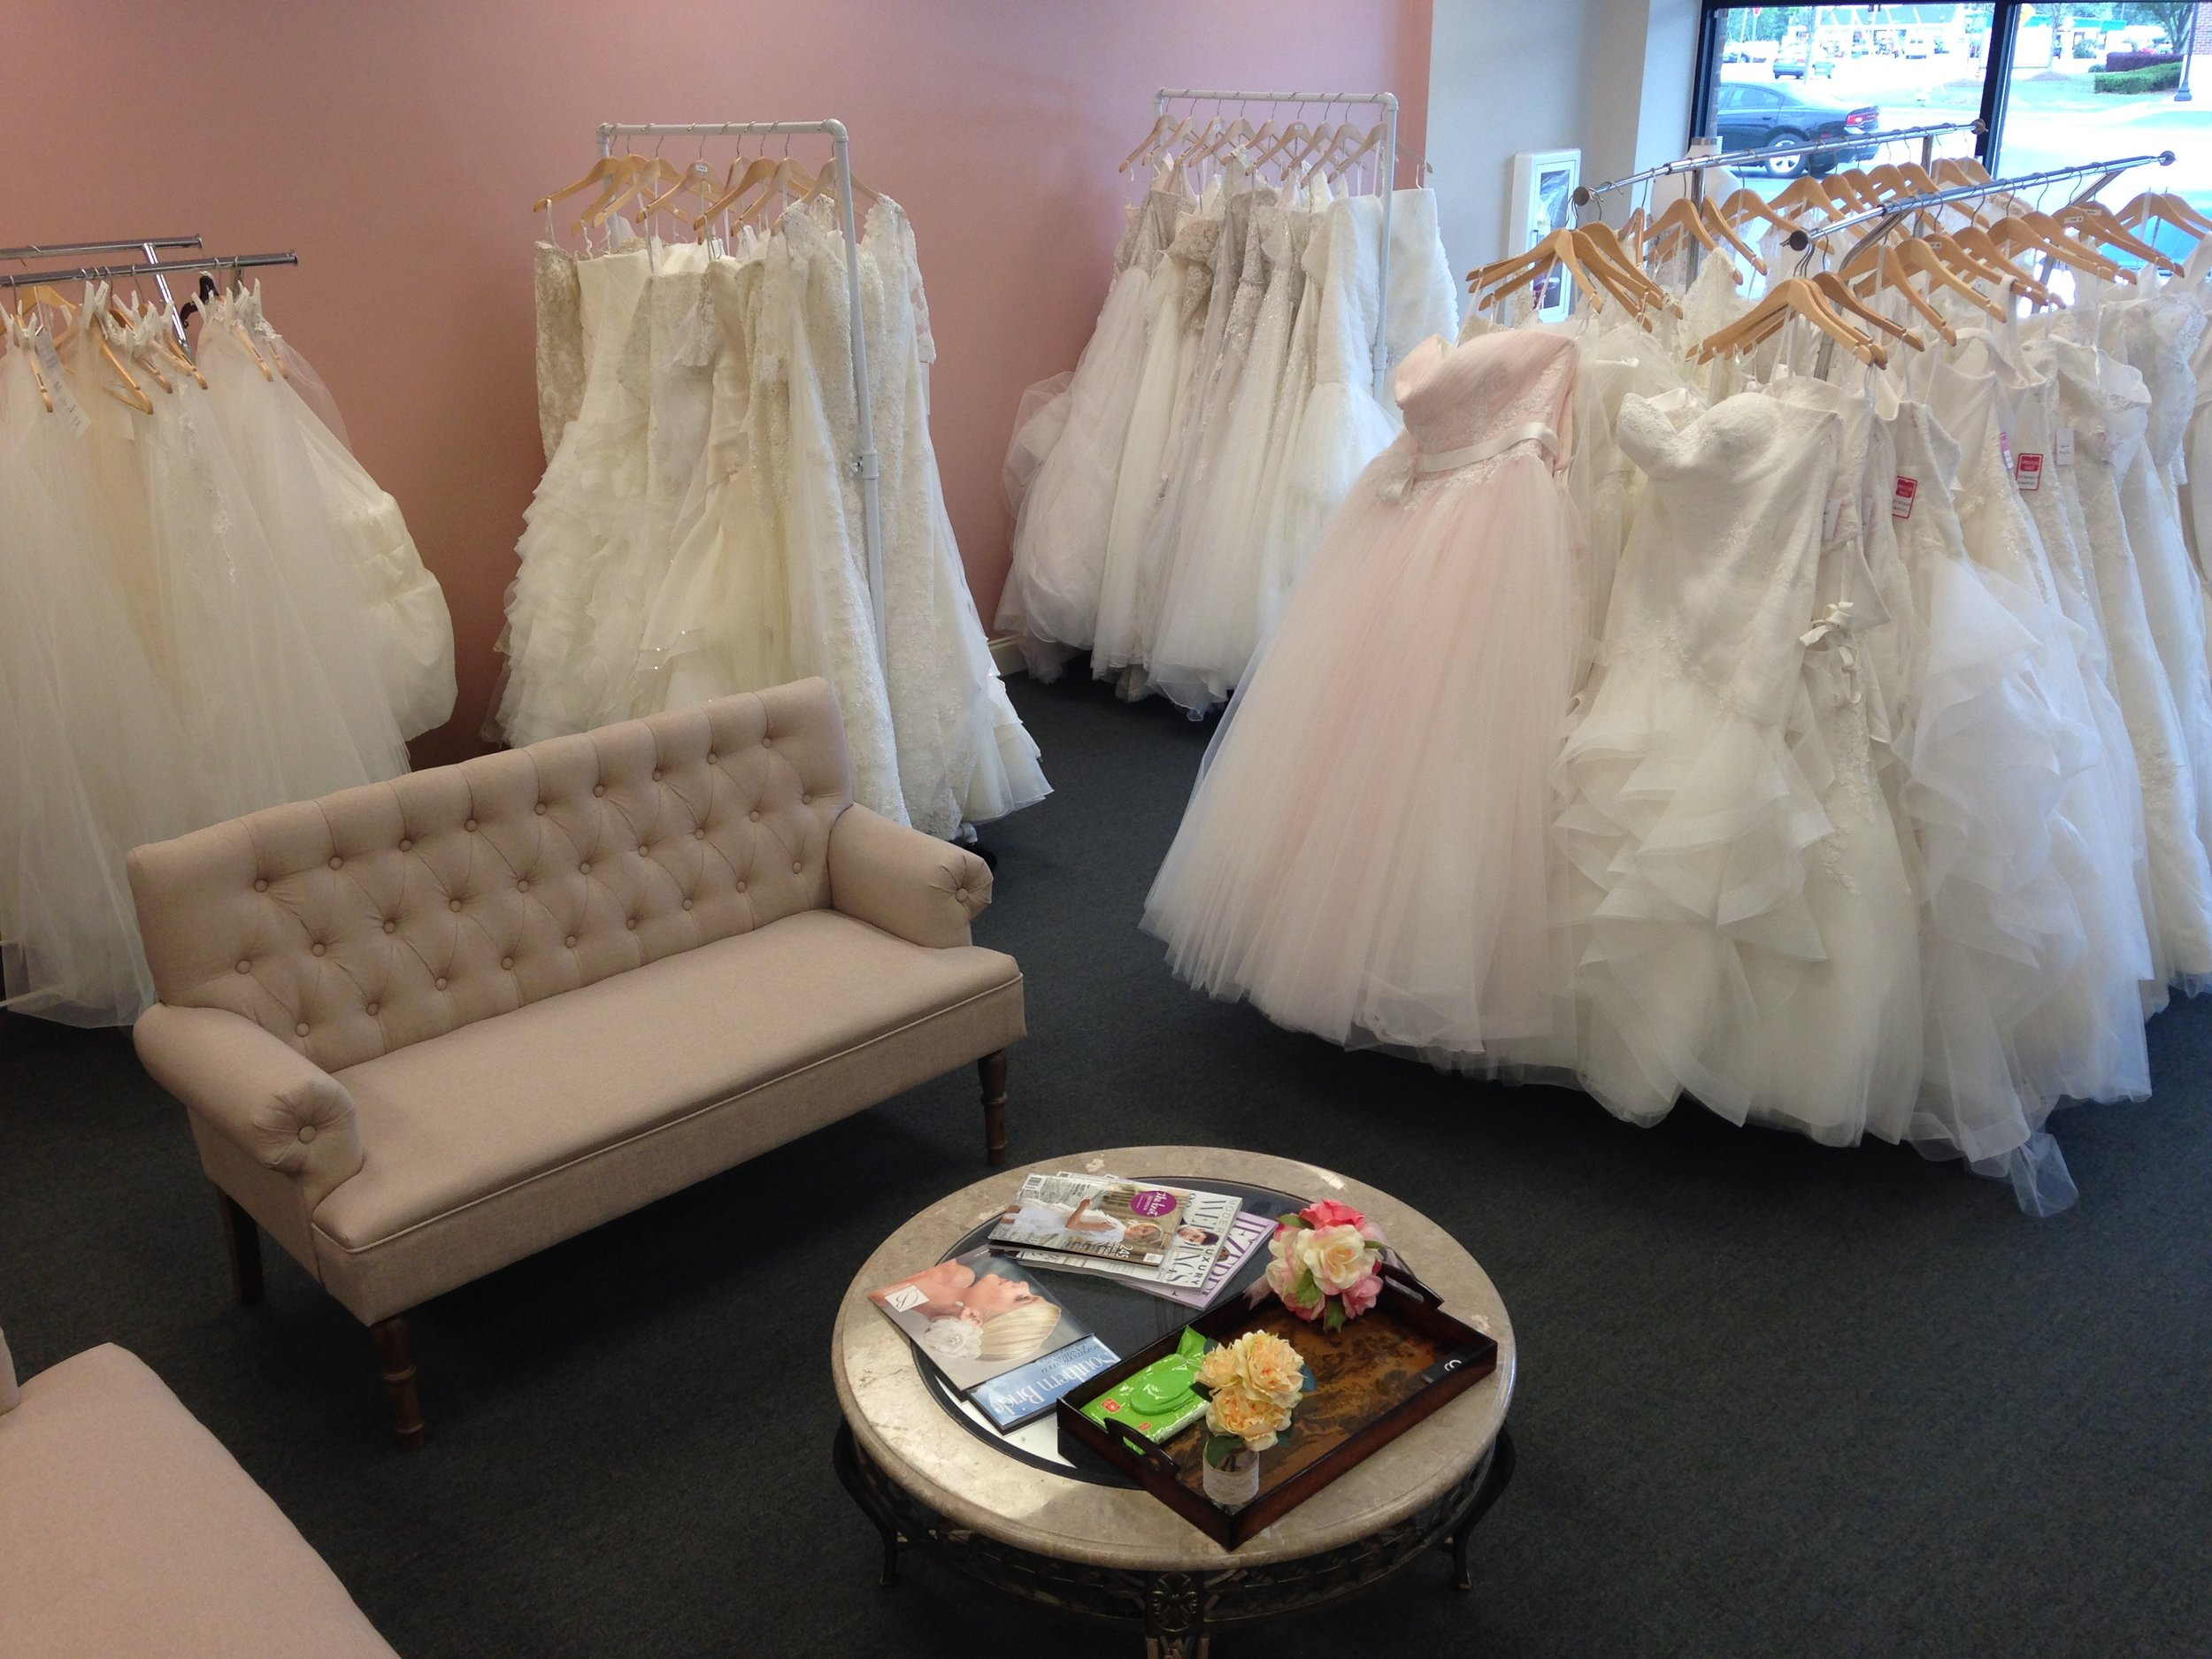 Our new storefront full of beautiful dresses for curvy brides!